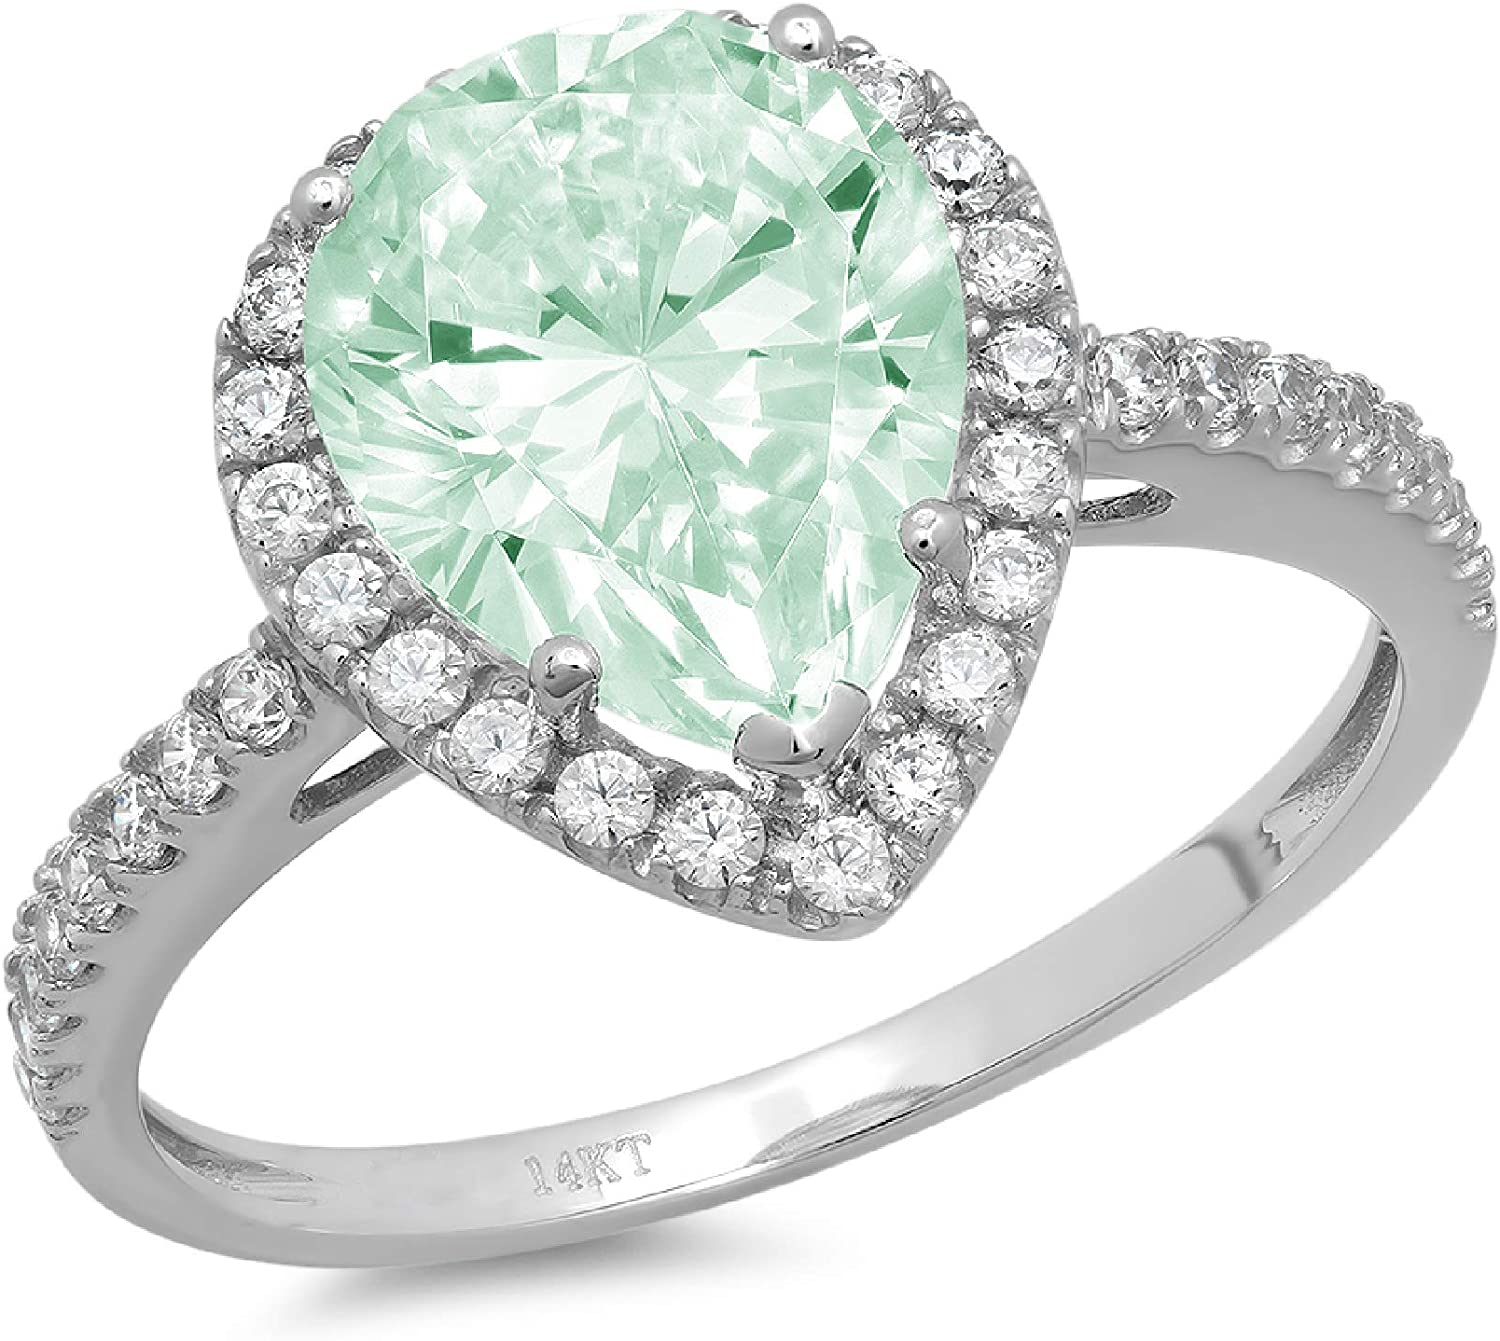 2.42ct Brilliant Pear Cut Solitaire with Accent Halo Light Sea Green Simulated Diamond CZ VVS1 Designer Modern Statement Ring Real Solid 14k White Gold Clara Pucci